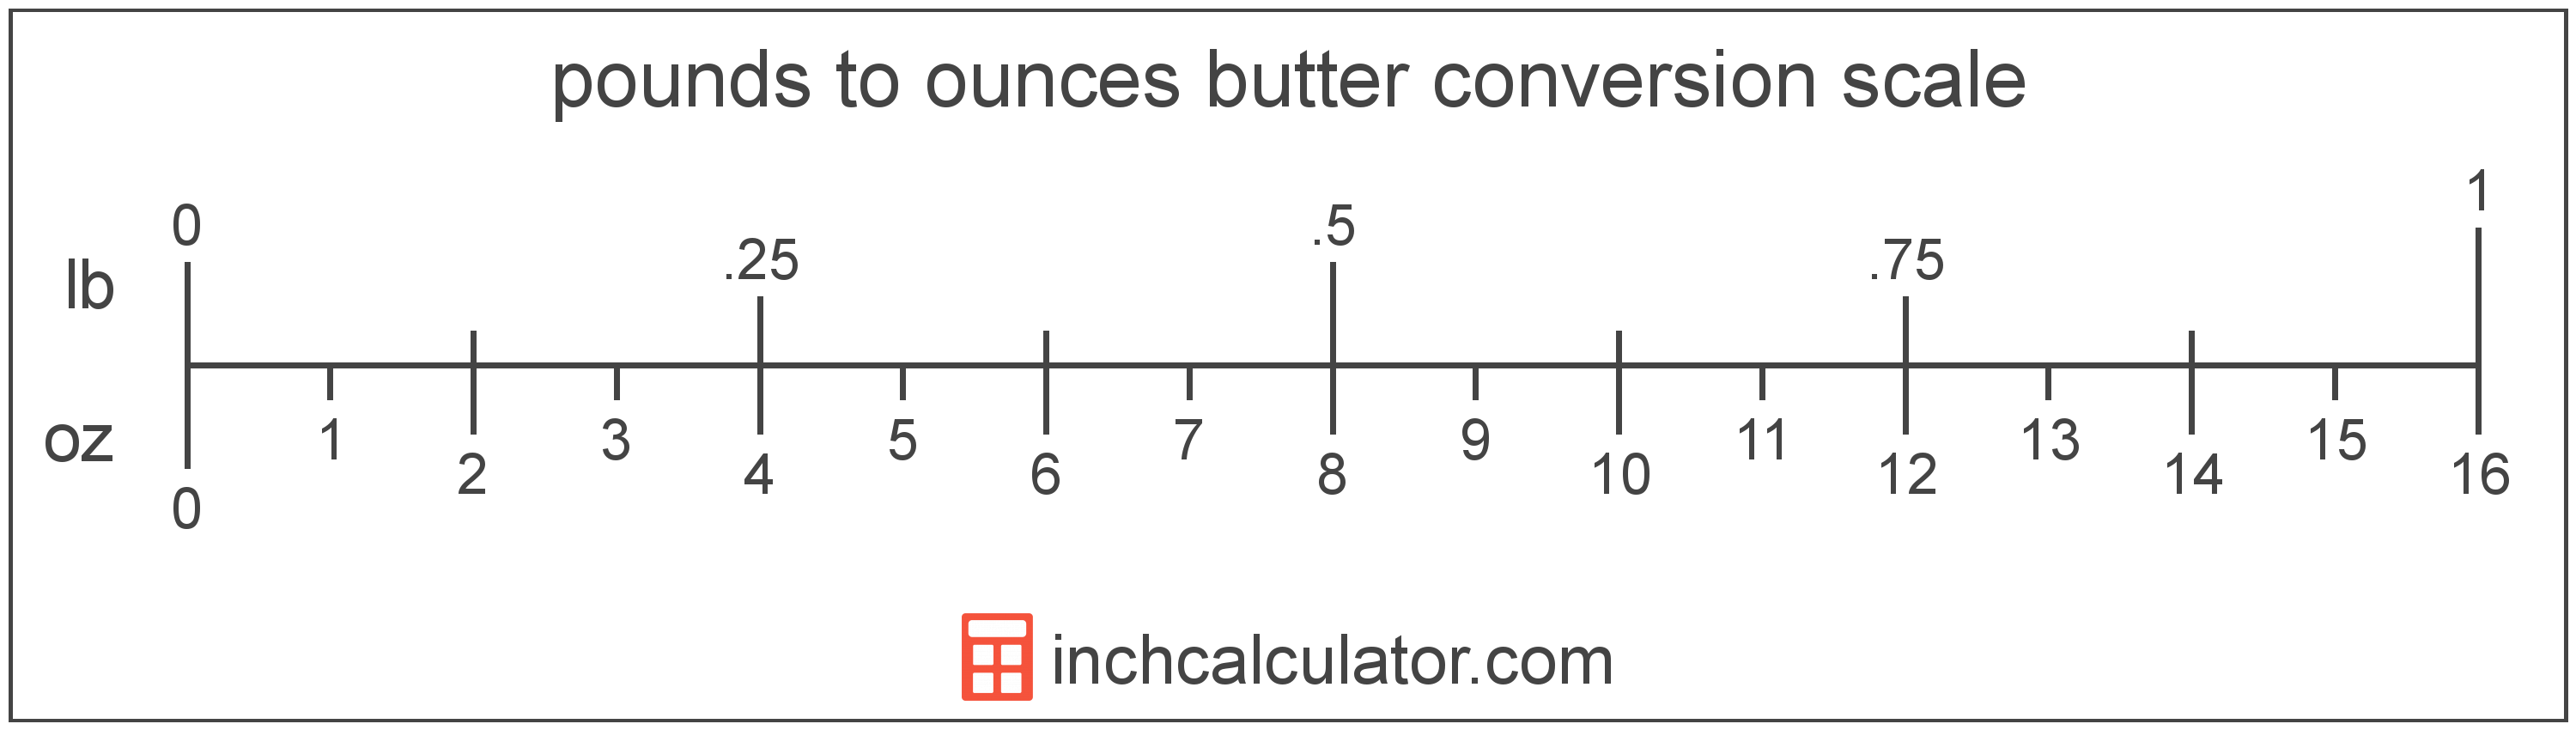 conversion scale showing pounds and equivalent ounces butter values